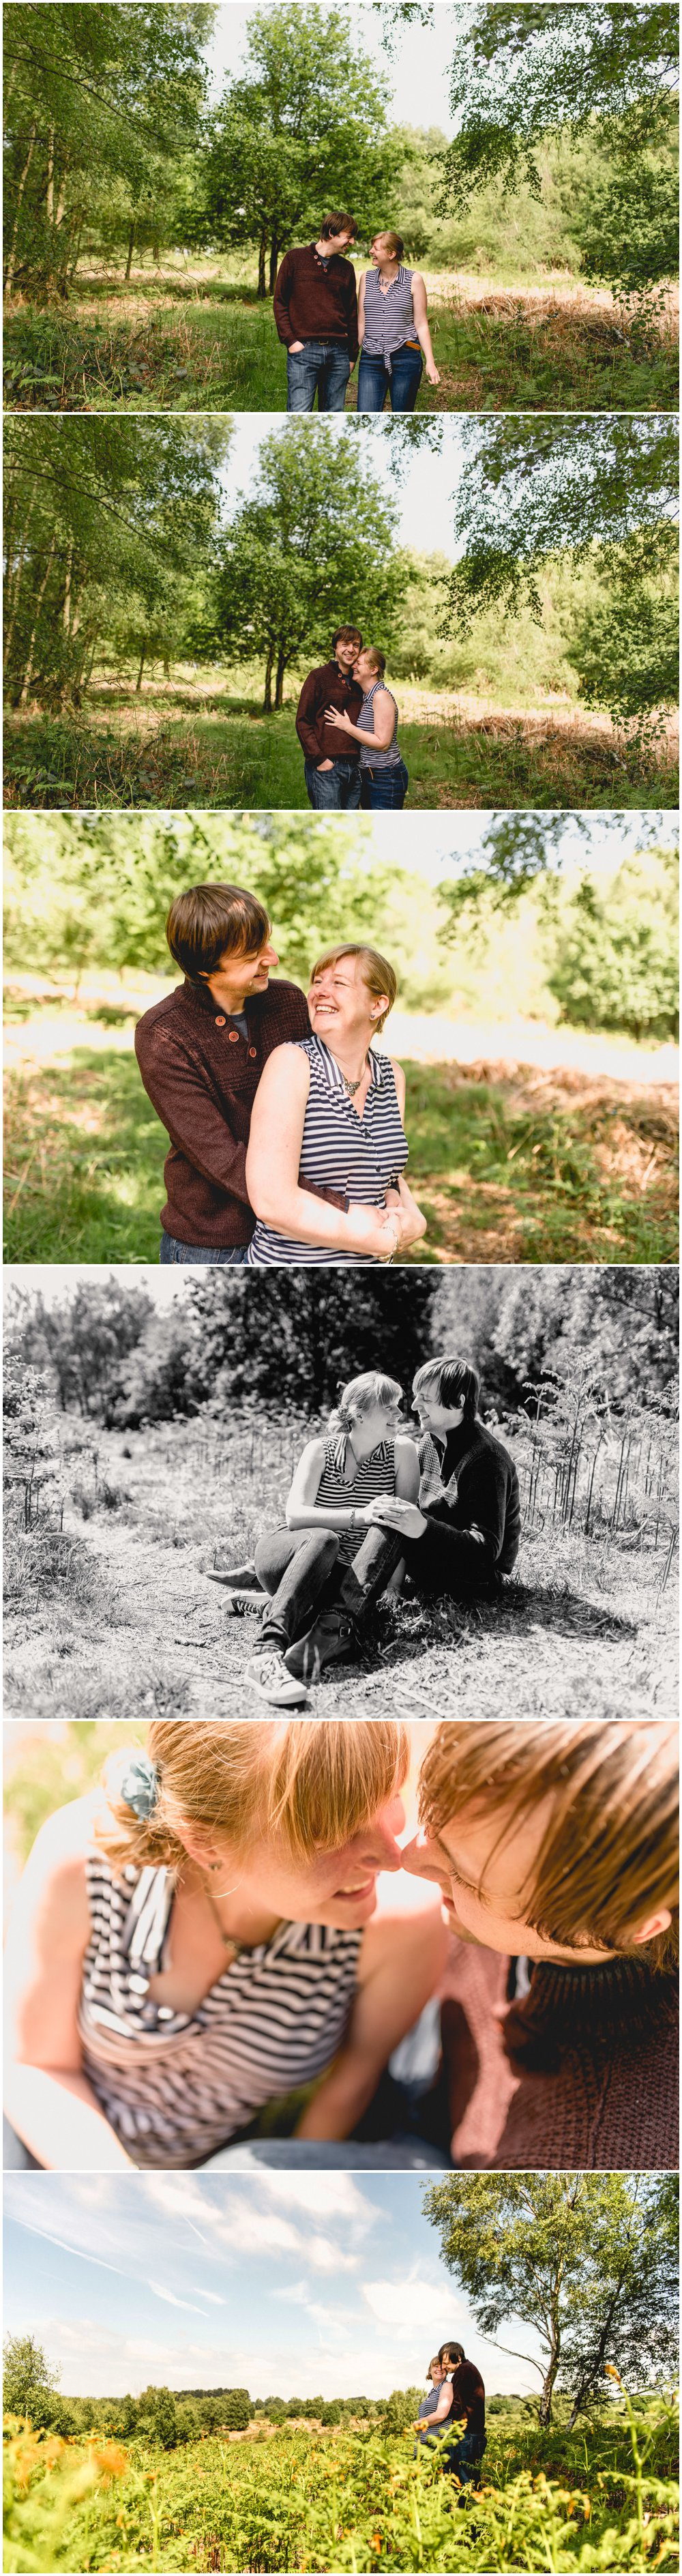 Engagement shoot in Sutton Park by Birmingham, Sutton Coldfield and West Midlands based photographer, Lisa Carpenter Photography.